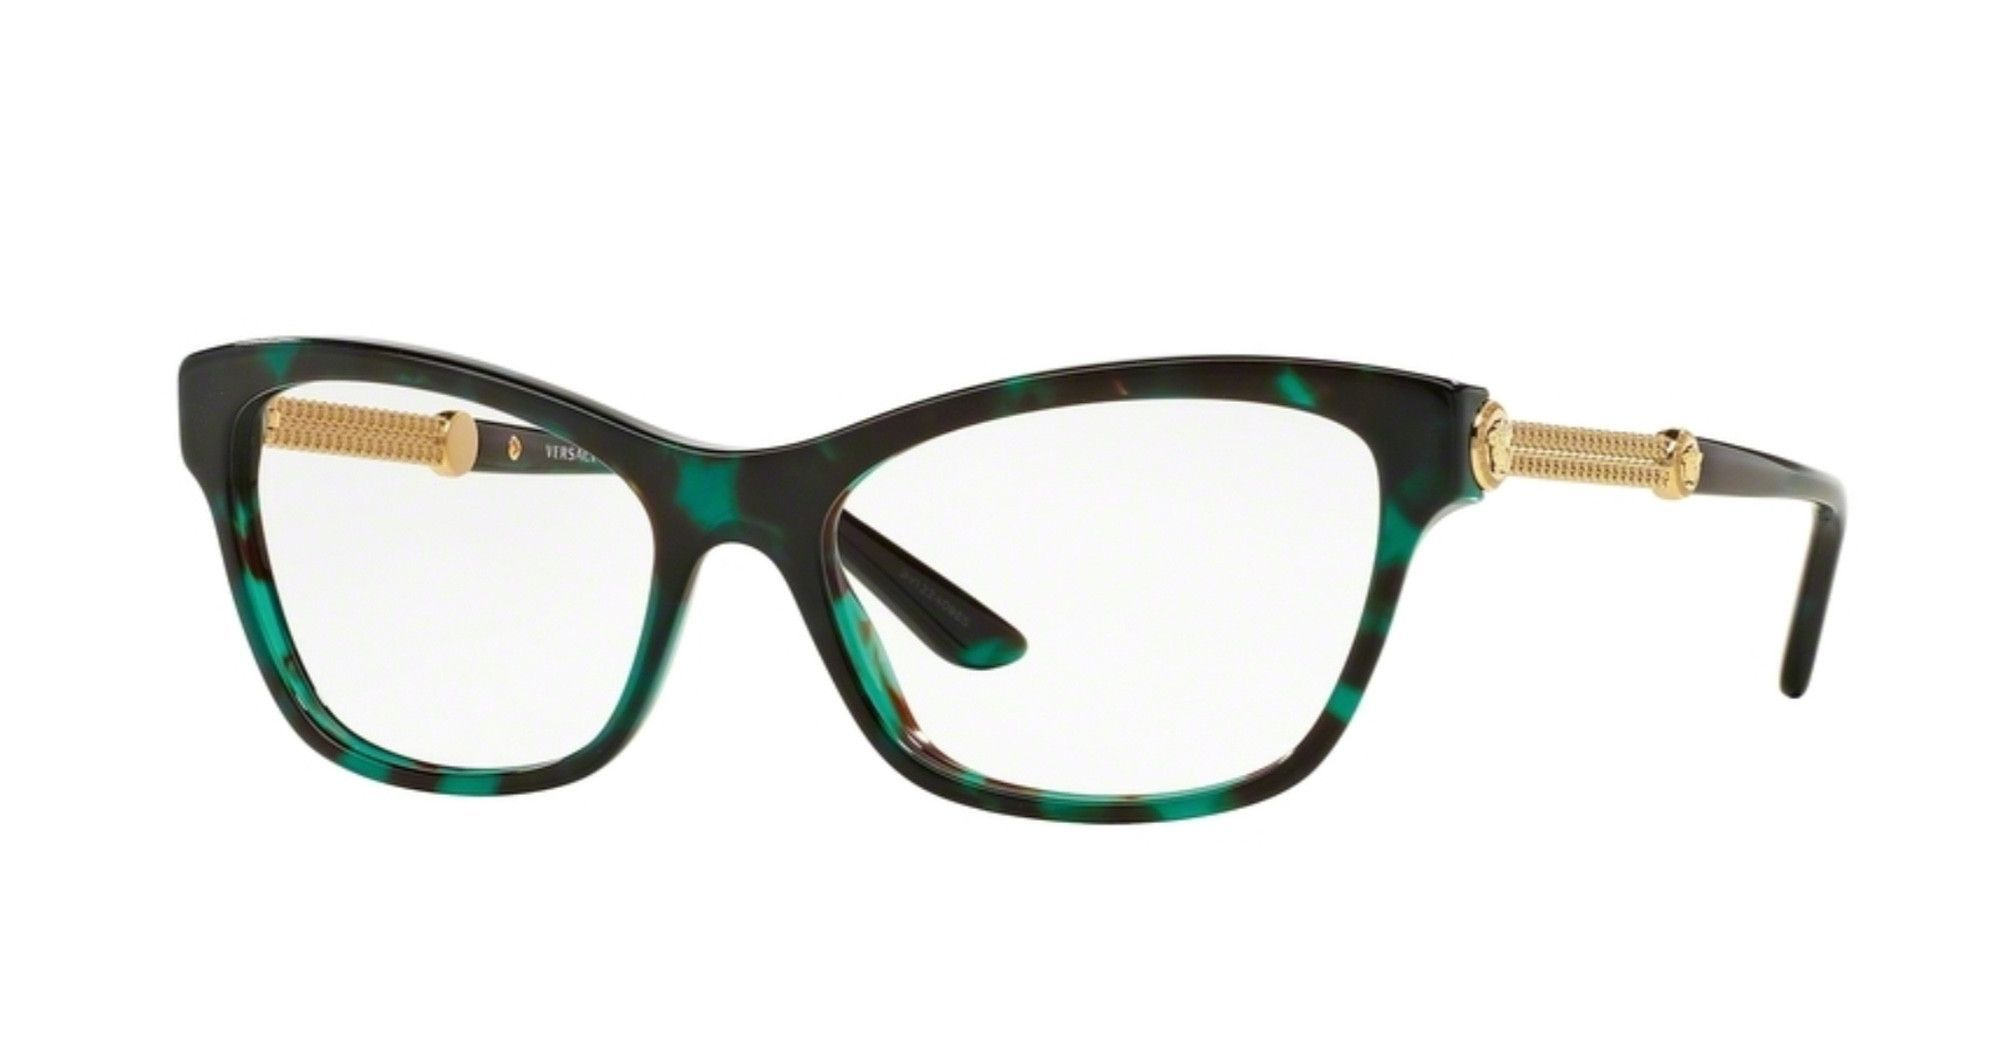 8f6155606d5e Versace VE3214-5076 Green Havana and Gold Eyeglasses - Sale! Up to 75% OFF!  Shop at Stylizio for women's and men's designer handbags, luxury  sunglasses, ...